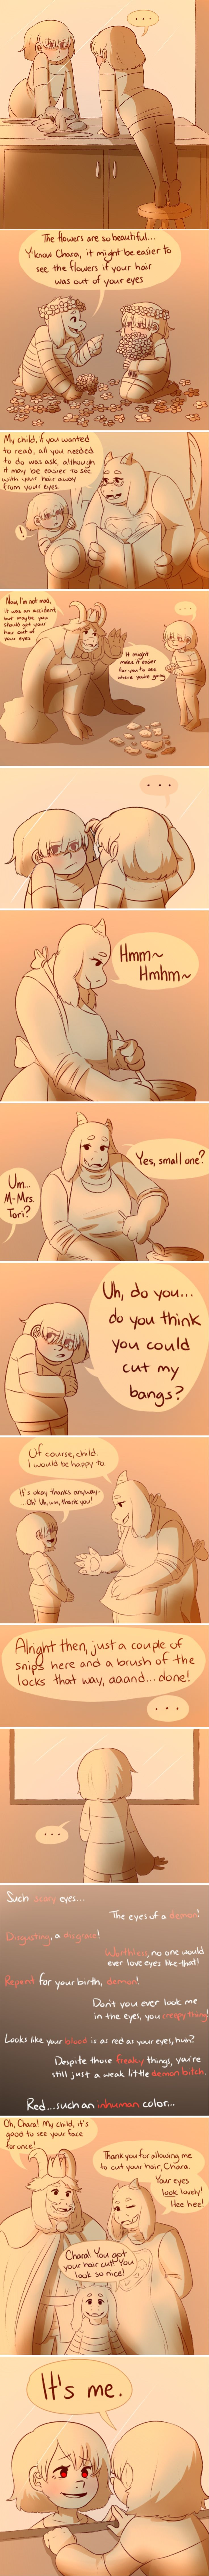 You have to wonder how Chara ended up hating humanity so much? I don't blame her of course.